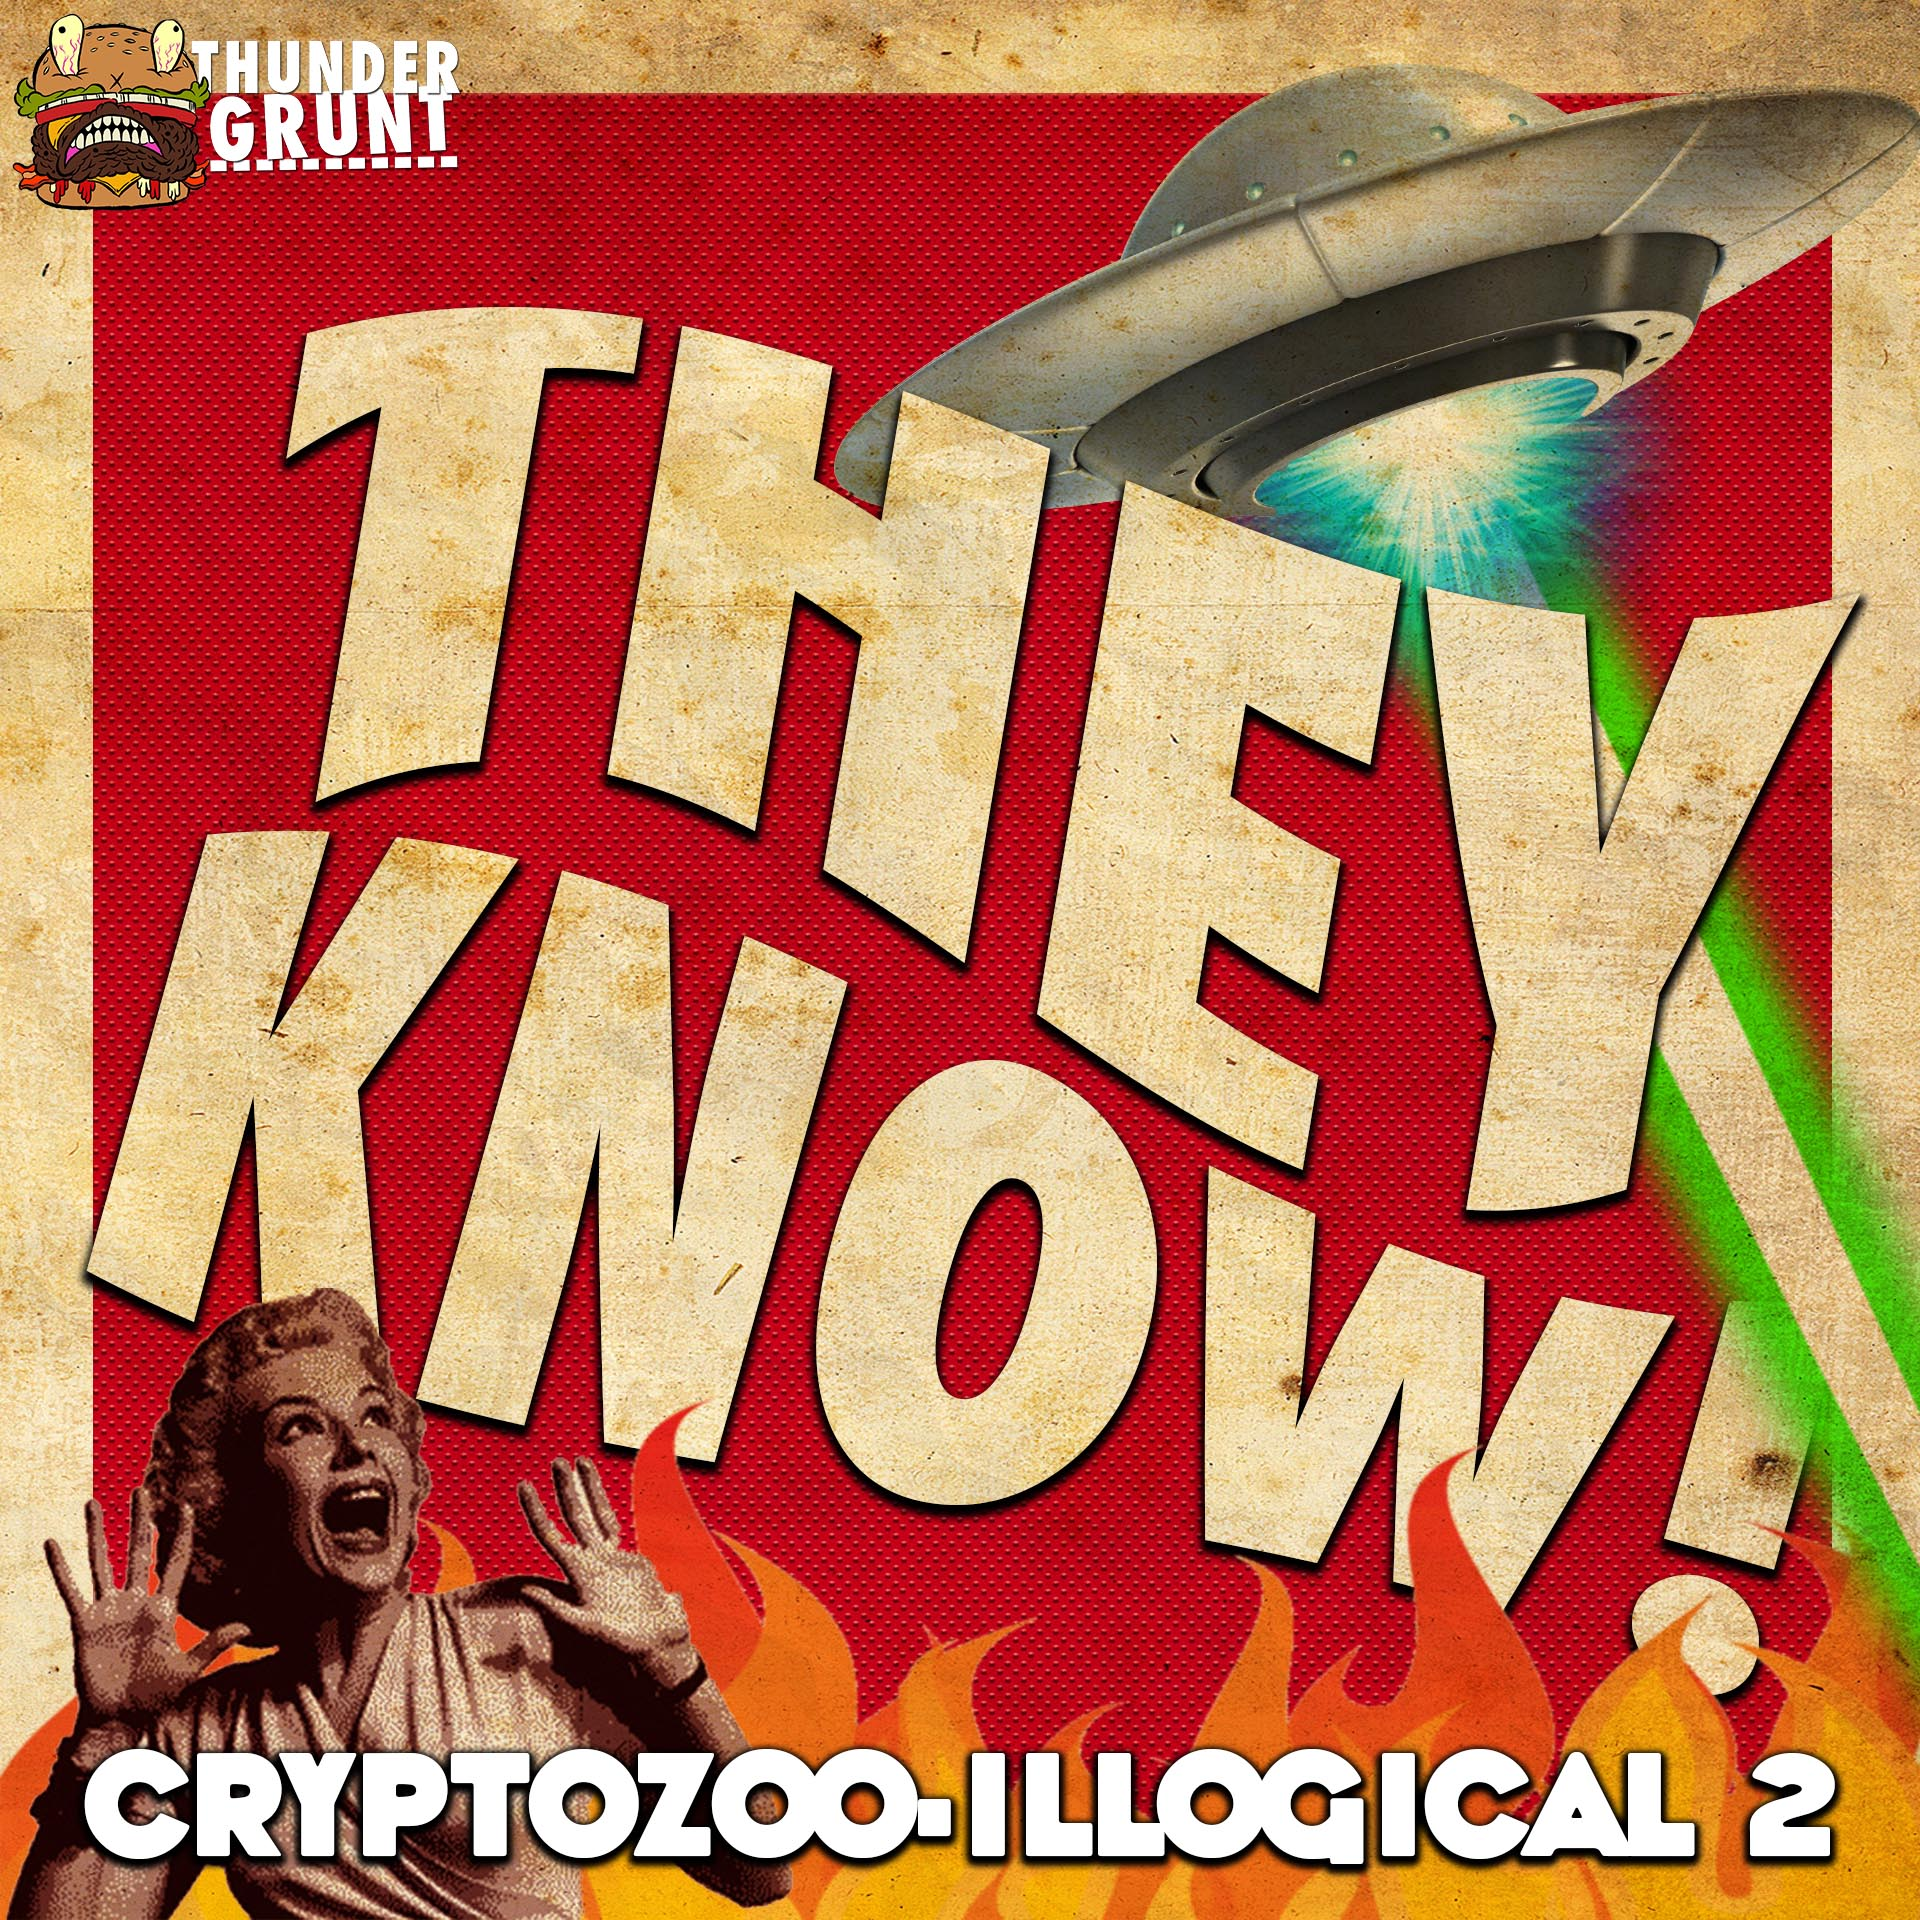 THEY KNOW! 015 | CRYPTOZOO-ILLOGICAL 2